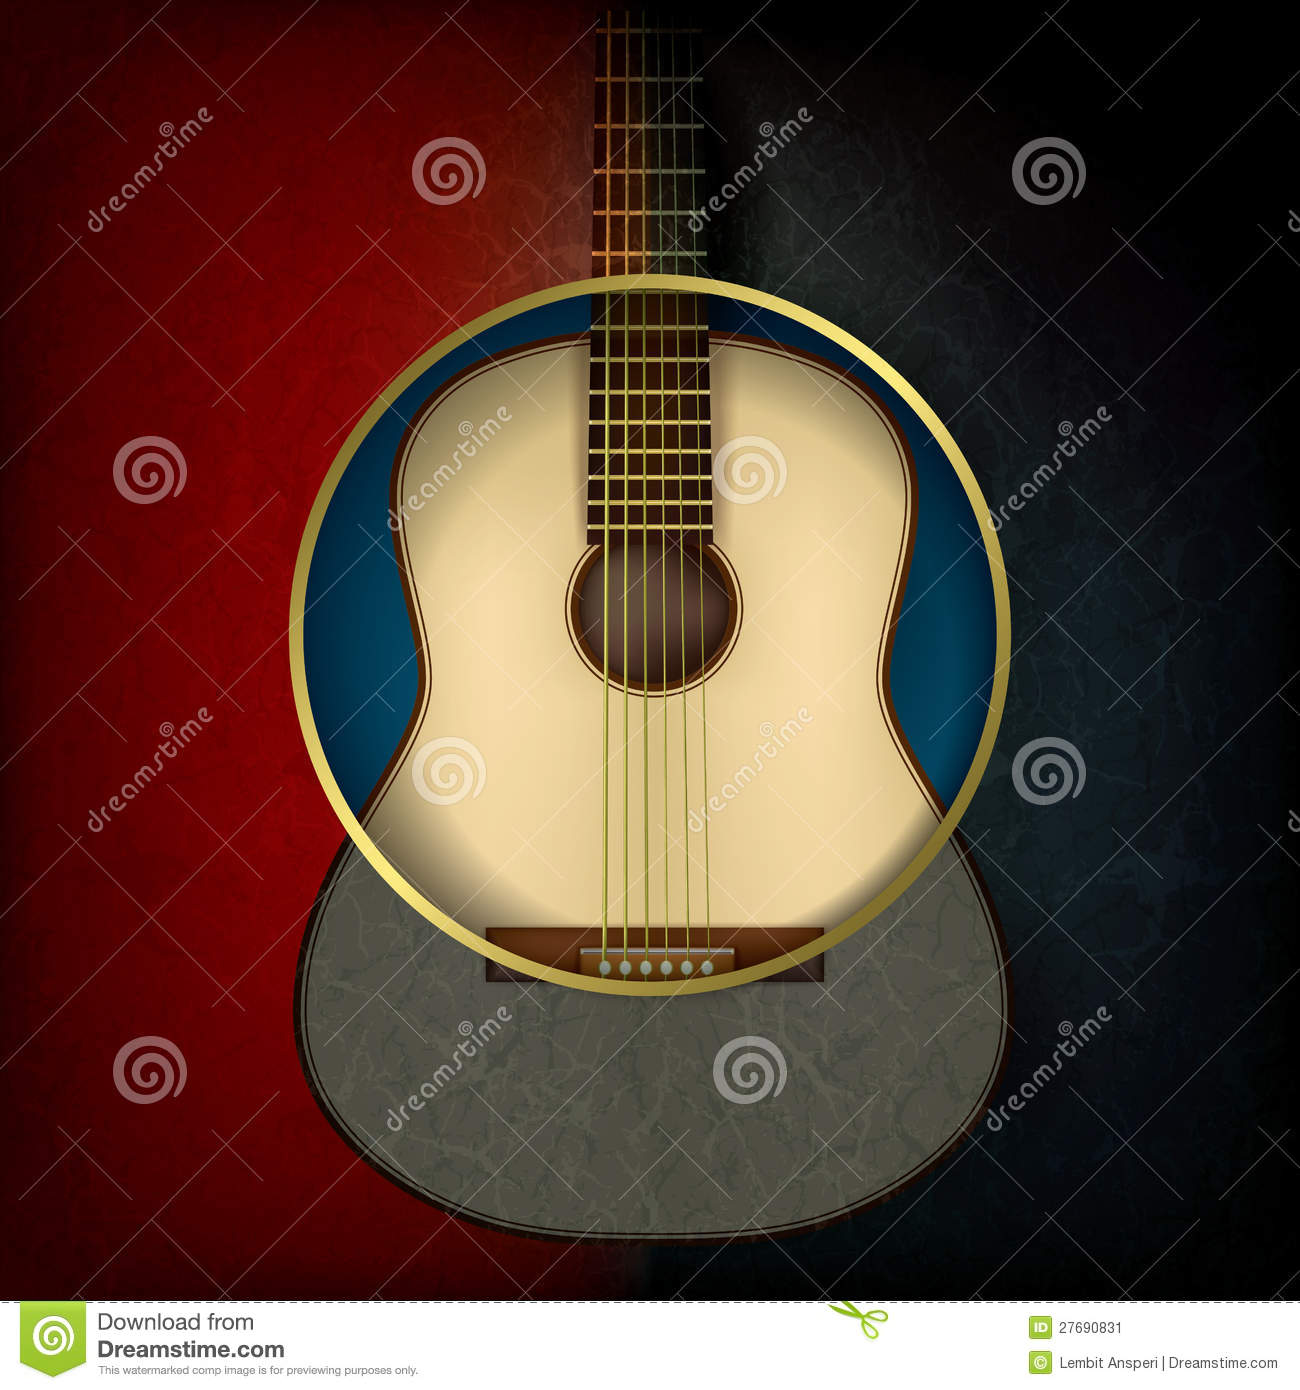 music time guitar abstract - photo #12